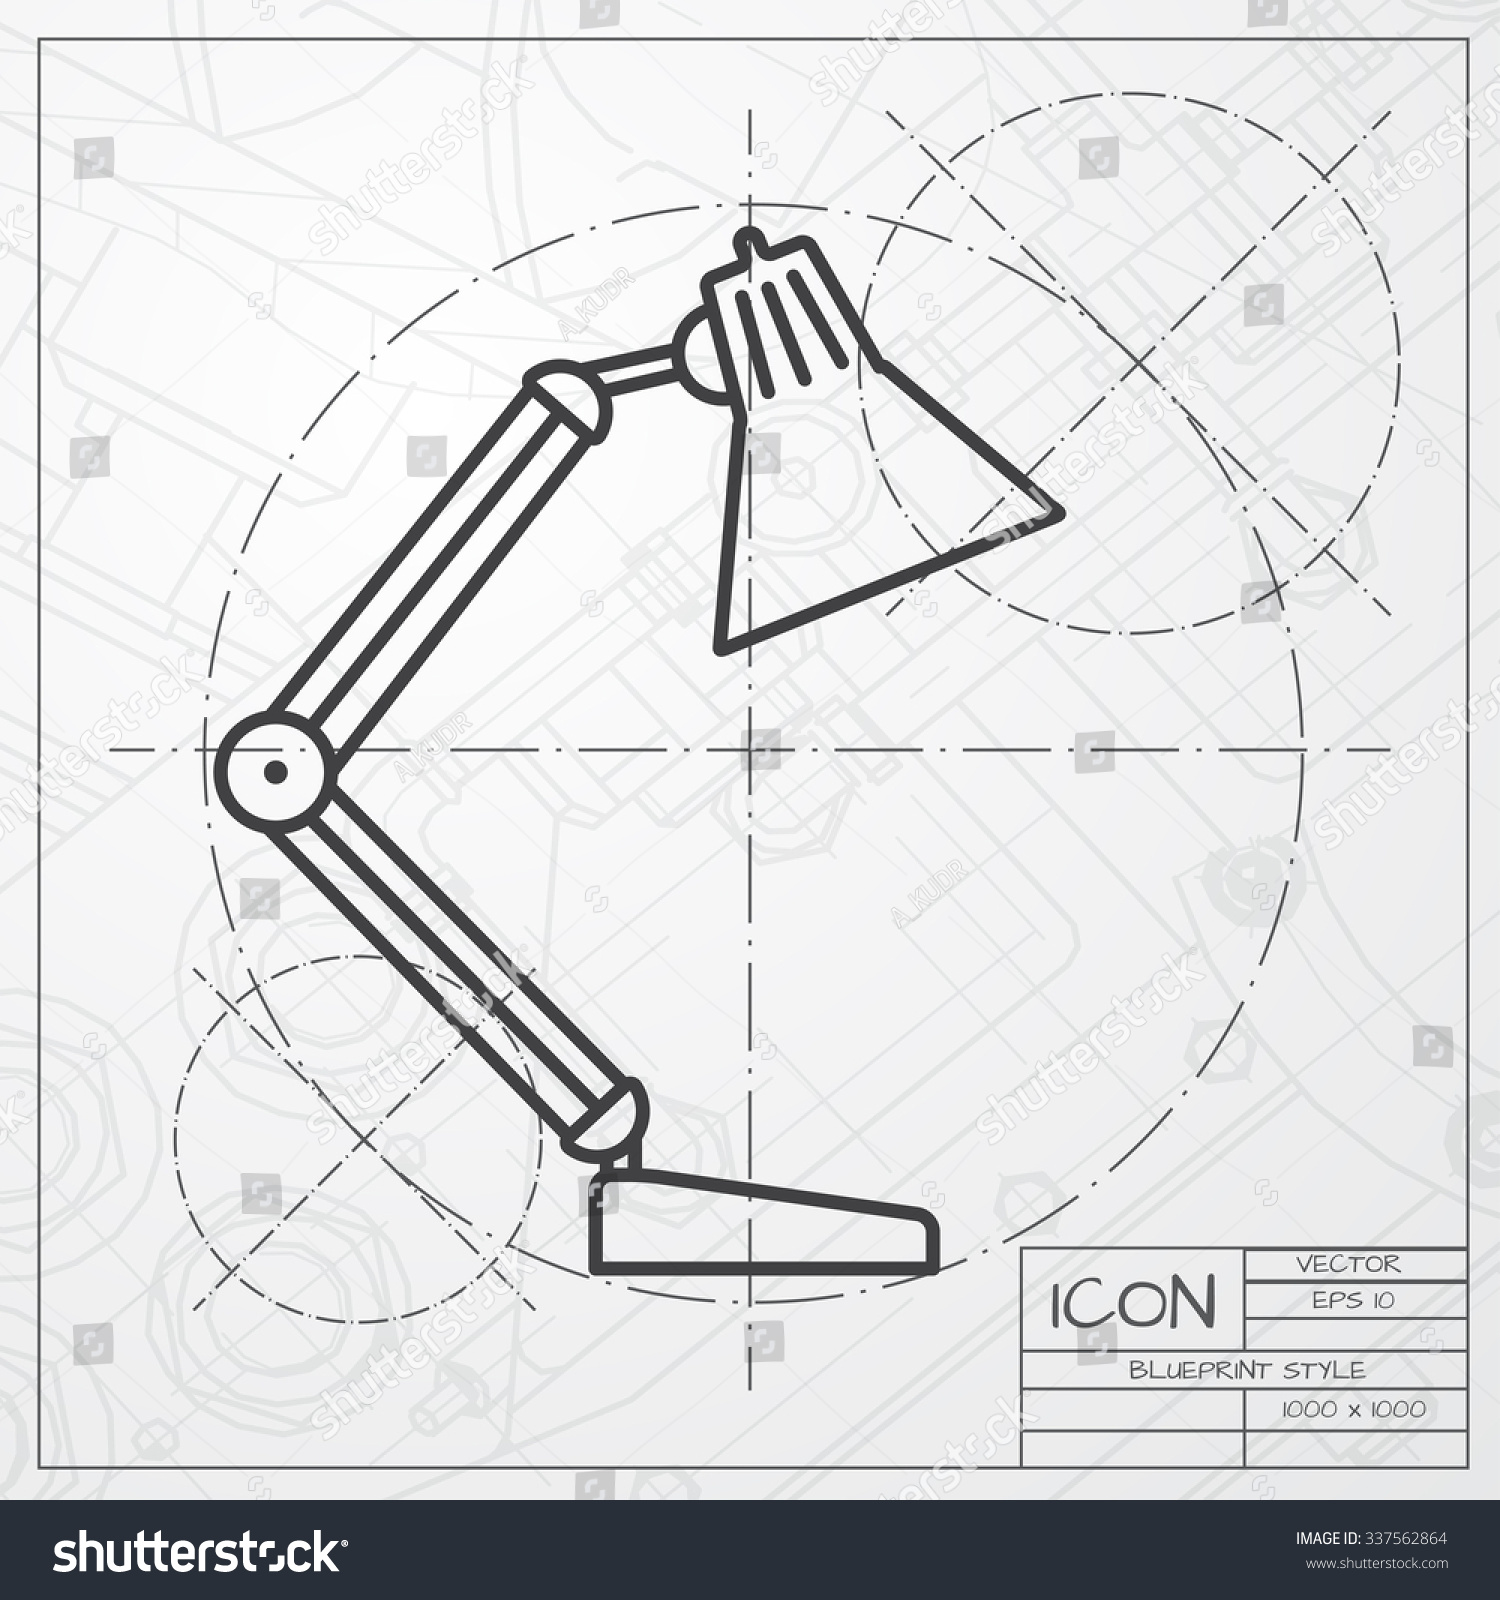 Table lamp for drawing - Vector Blueprint Of Table Lamp Icon On Engineer Or Architect Background